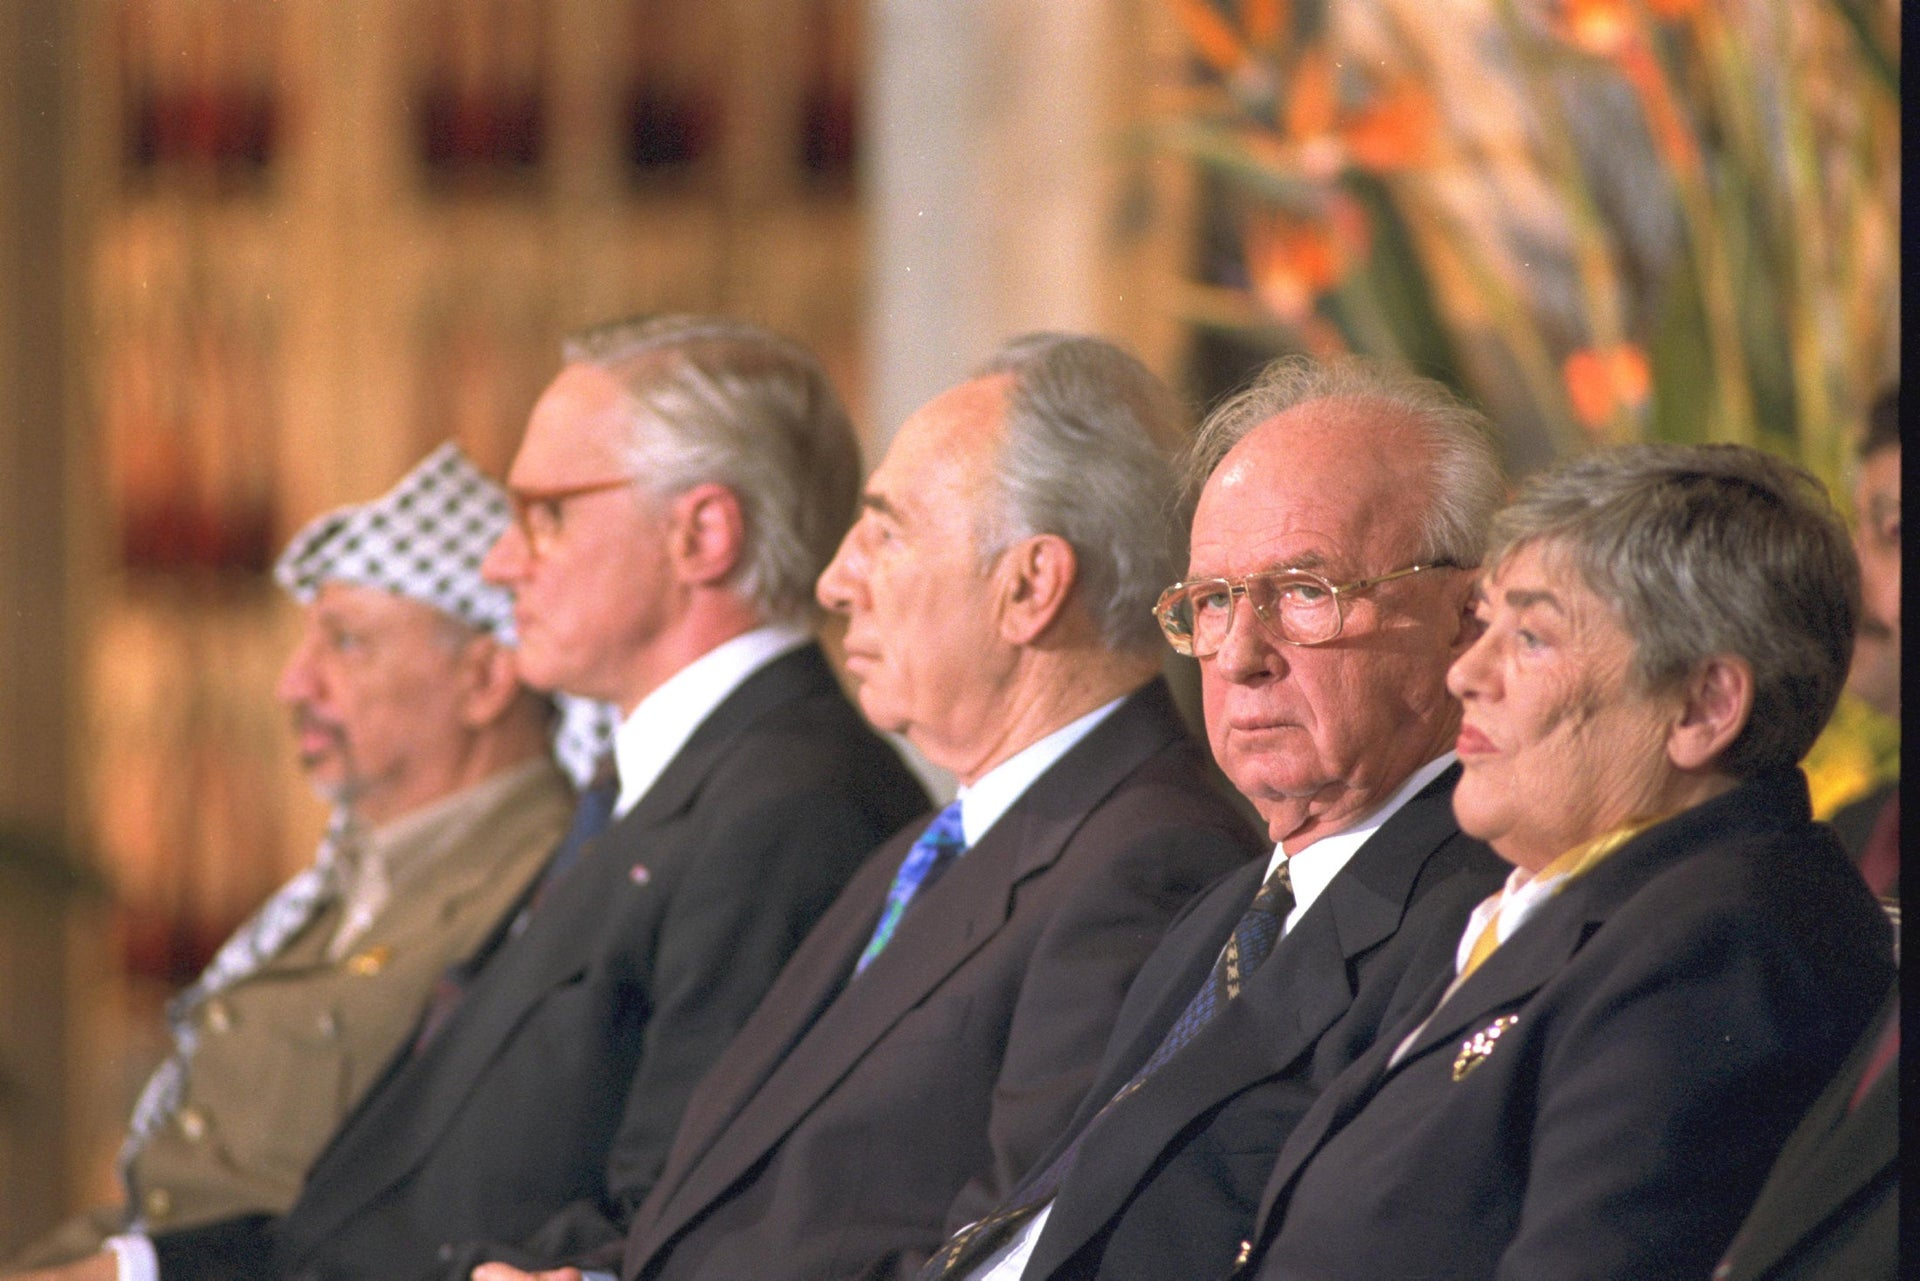 Nobel peace prize laureates Yasser Arafat, Shimon Peres and Yitzhak Rabin during the award ceremony in Oslo, 1994.